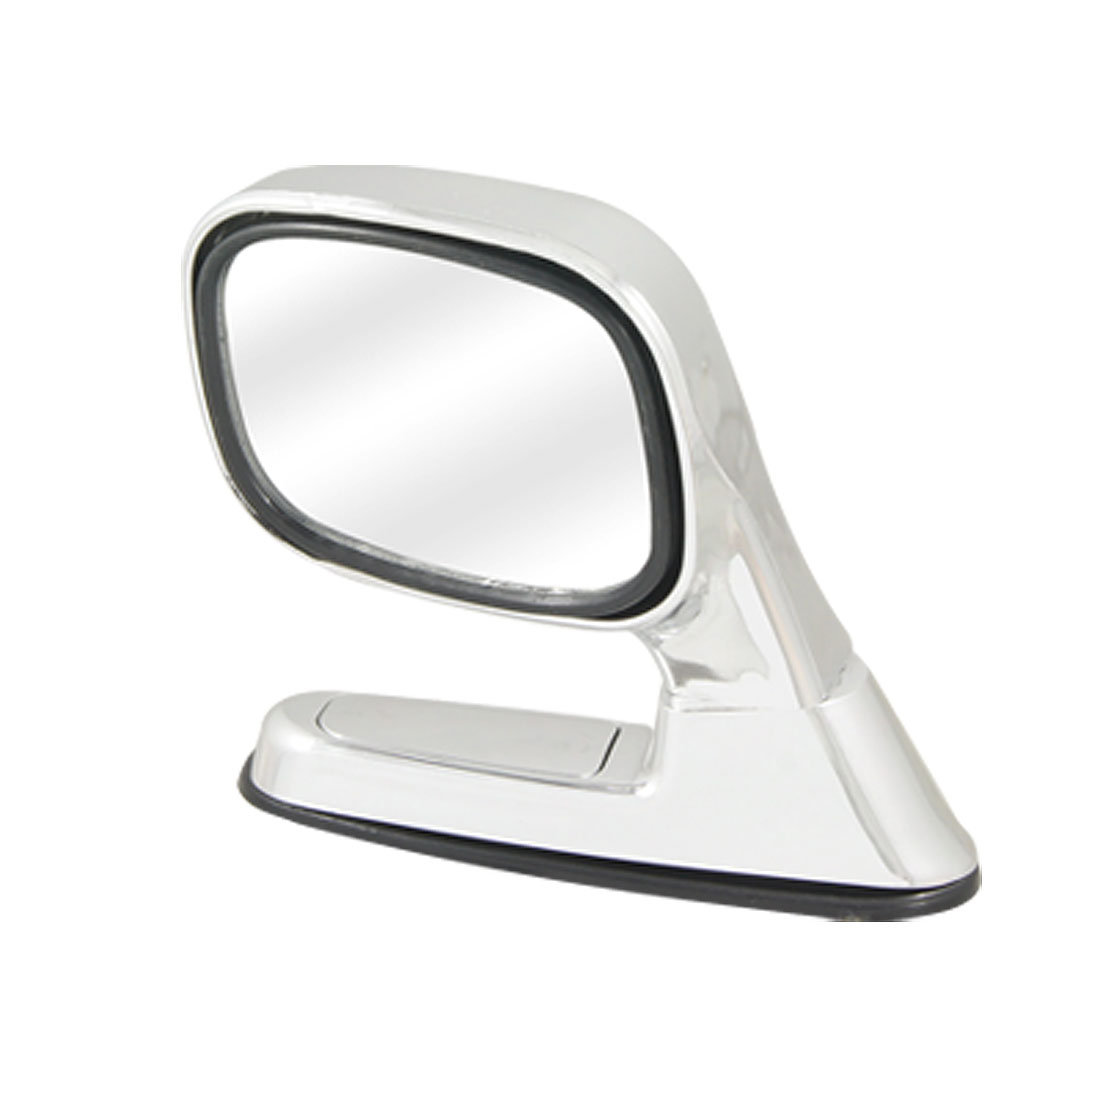 Rotatable Silver Tone Left Side Assistant Mirror for Auto Car